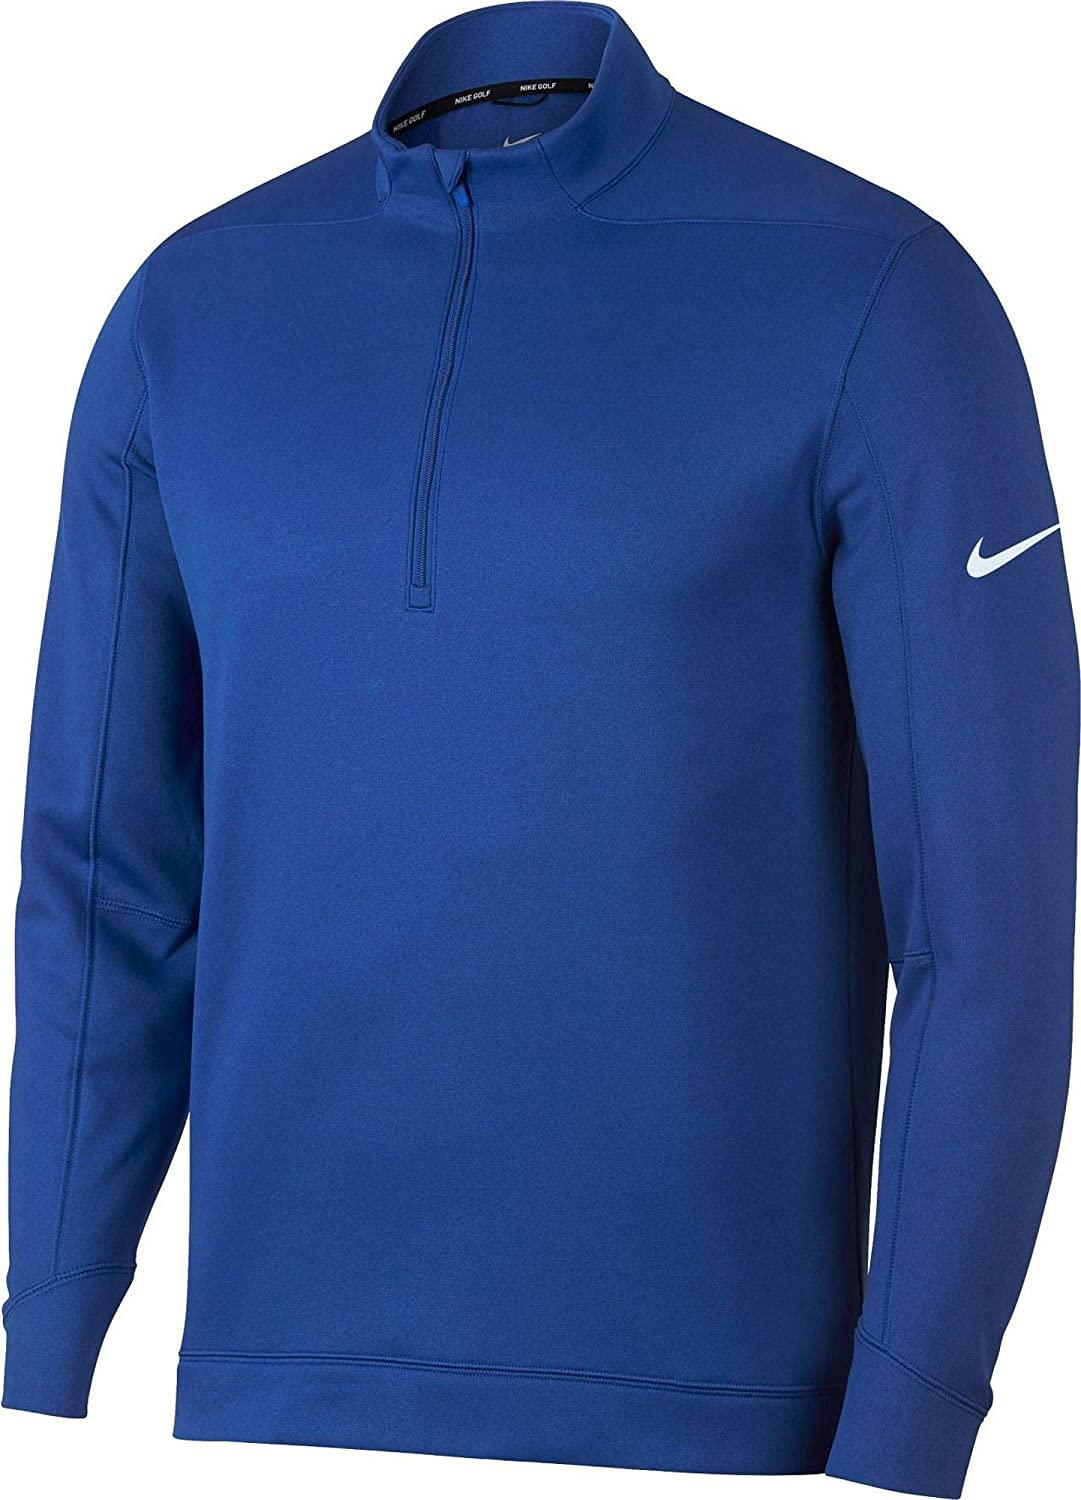 Nike New Therma Repel Ranking Super Special SALE held TOP11 TOP Pullover Half Zip OLC Golf